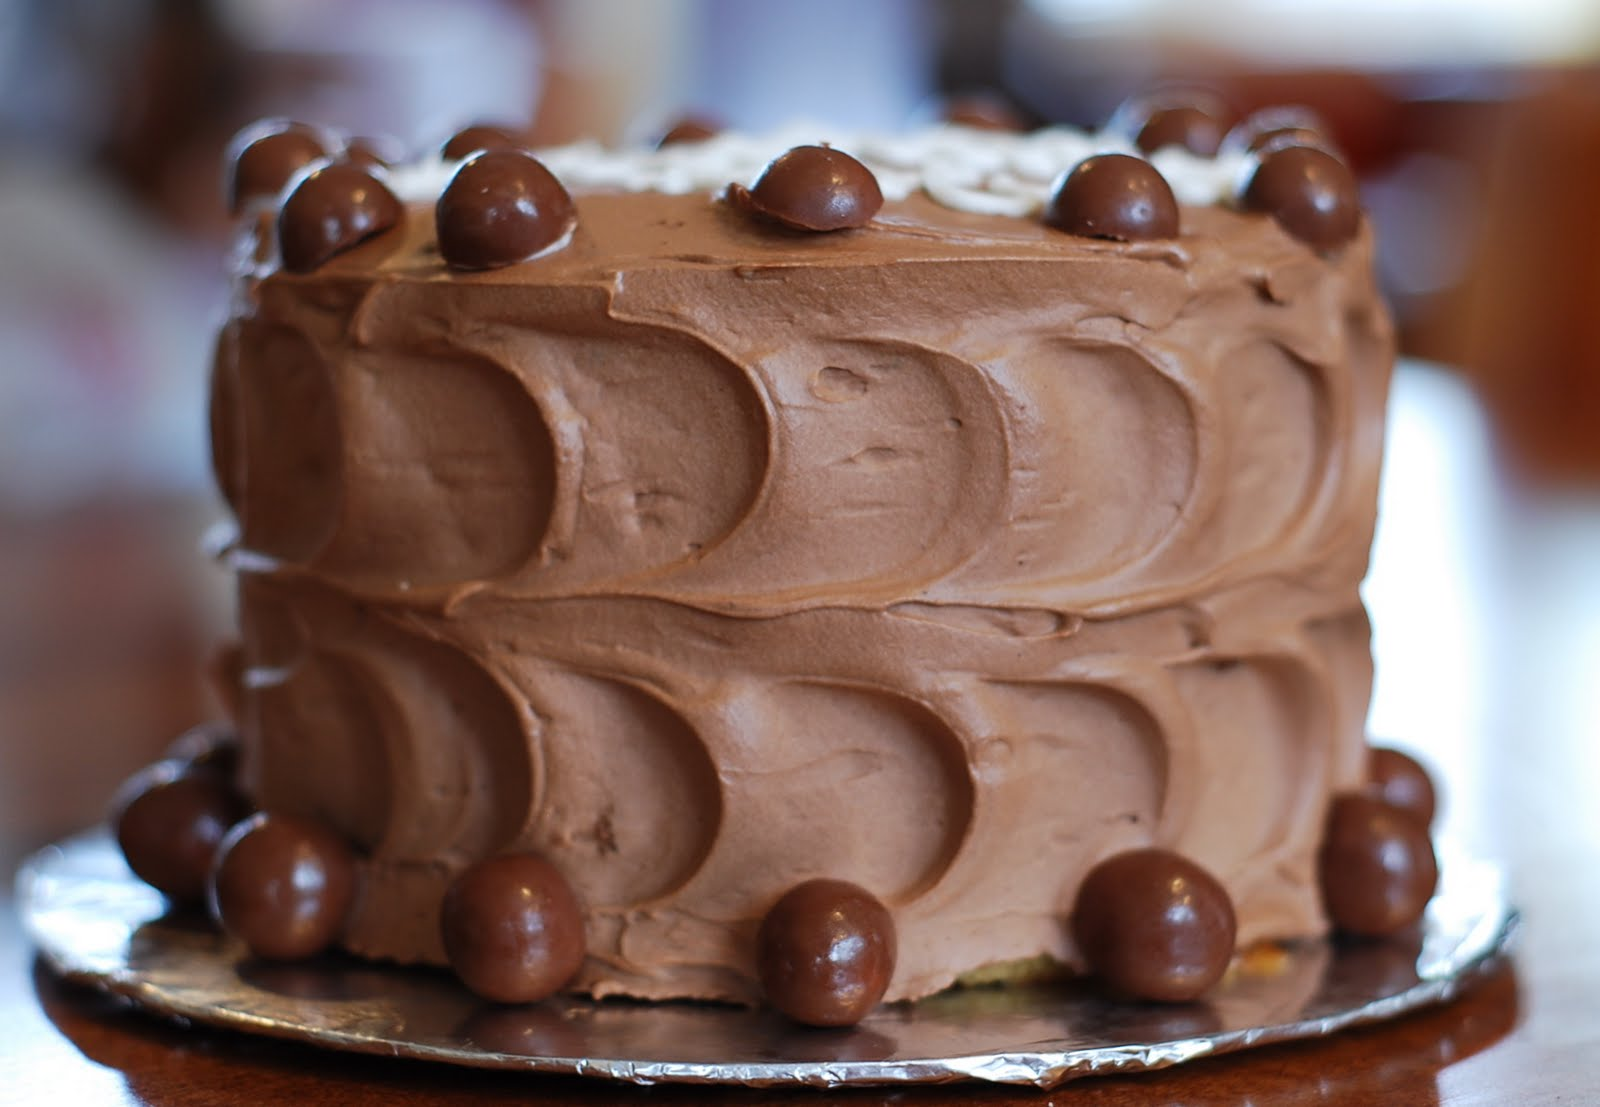 Marzipan Quick And Easy Cake Decorating